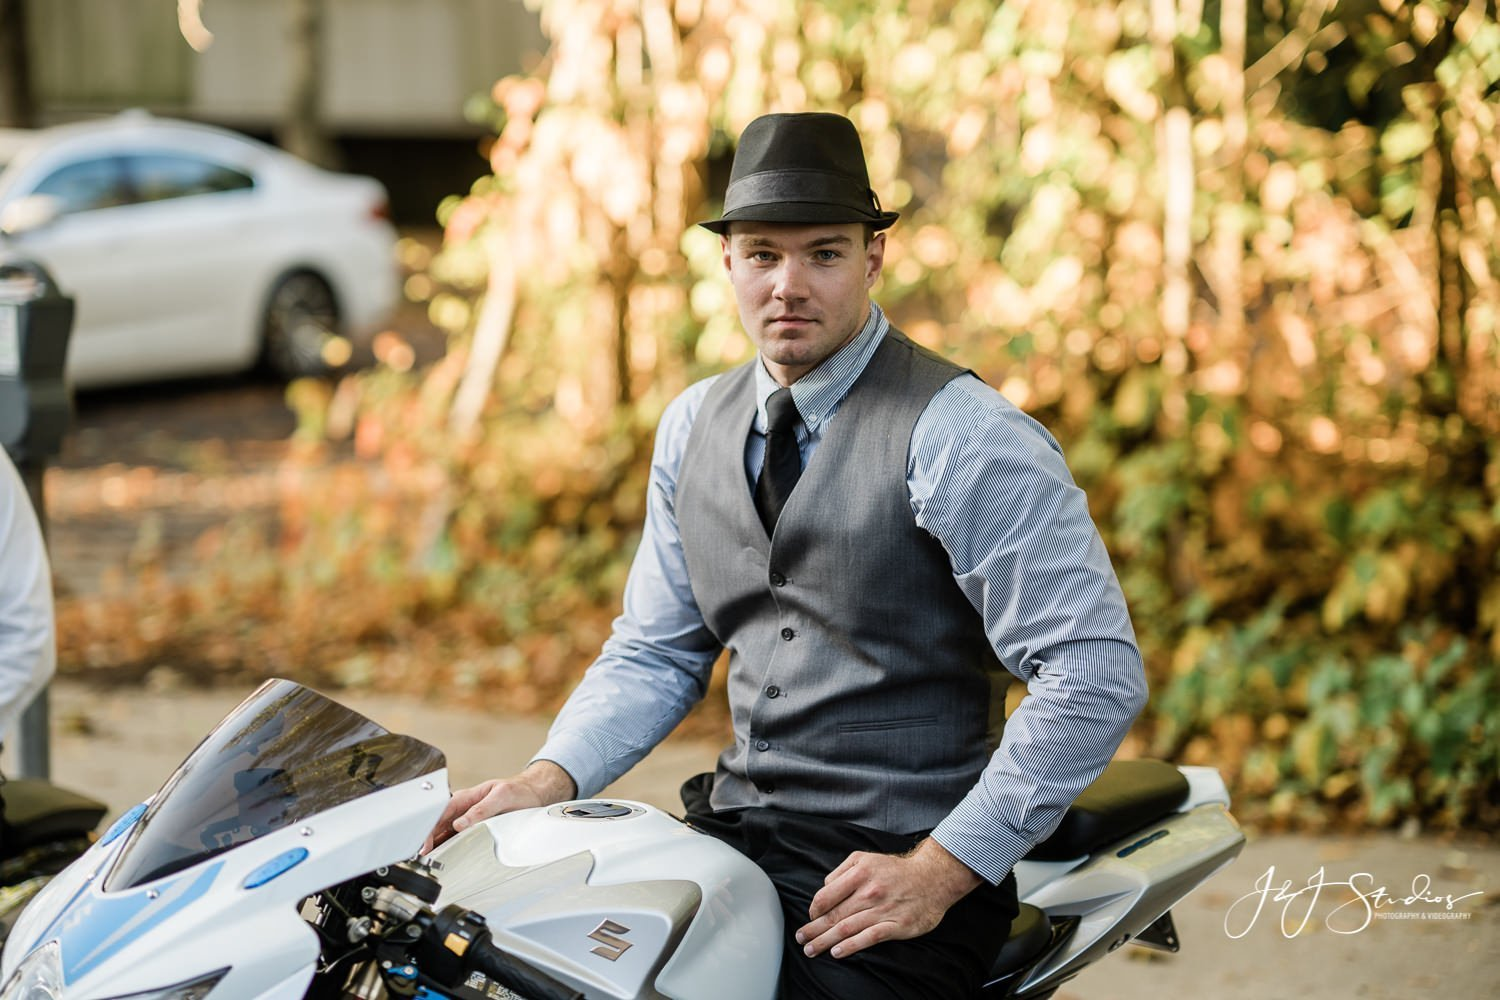 man in fedora on motorcycle